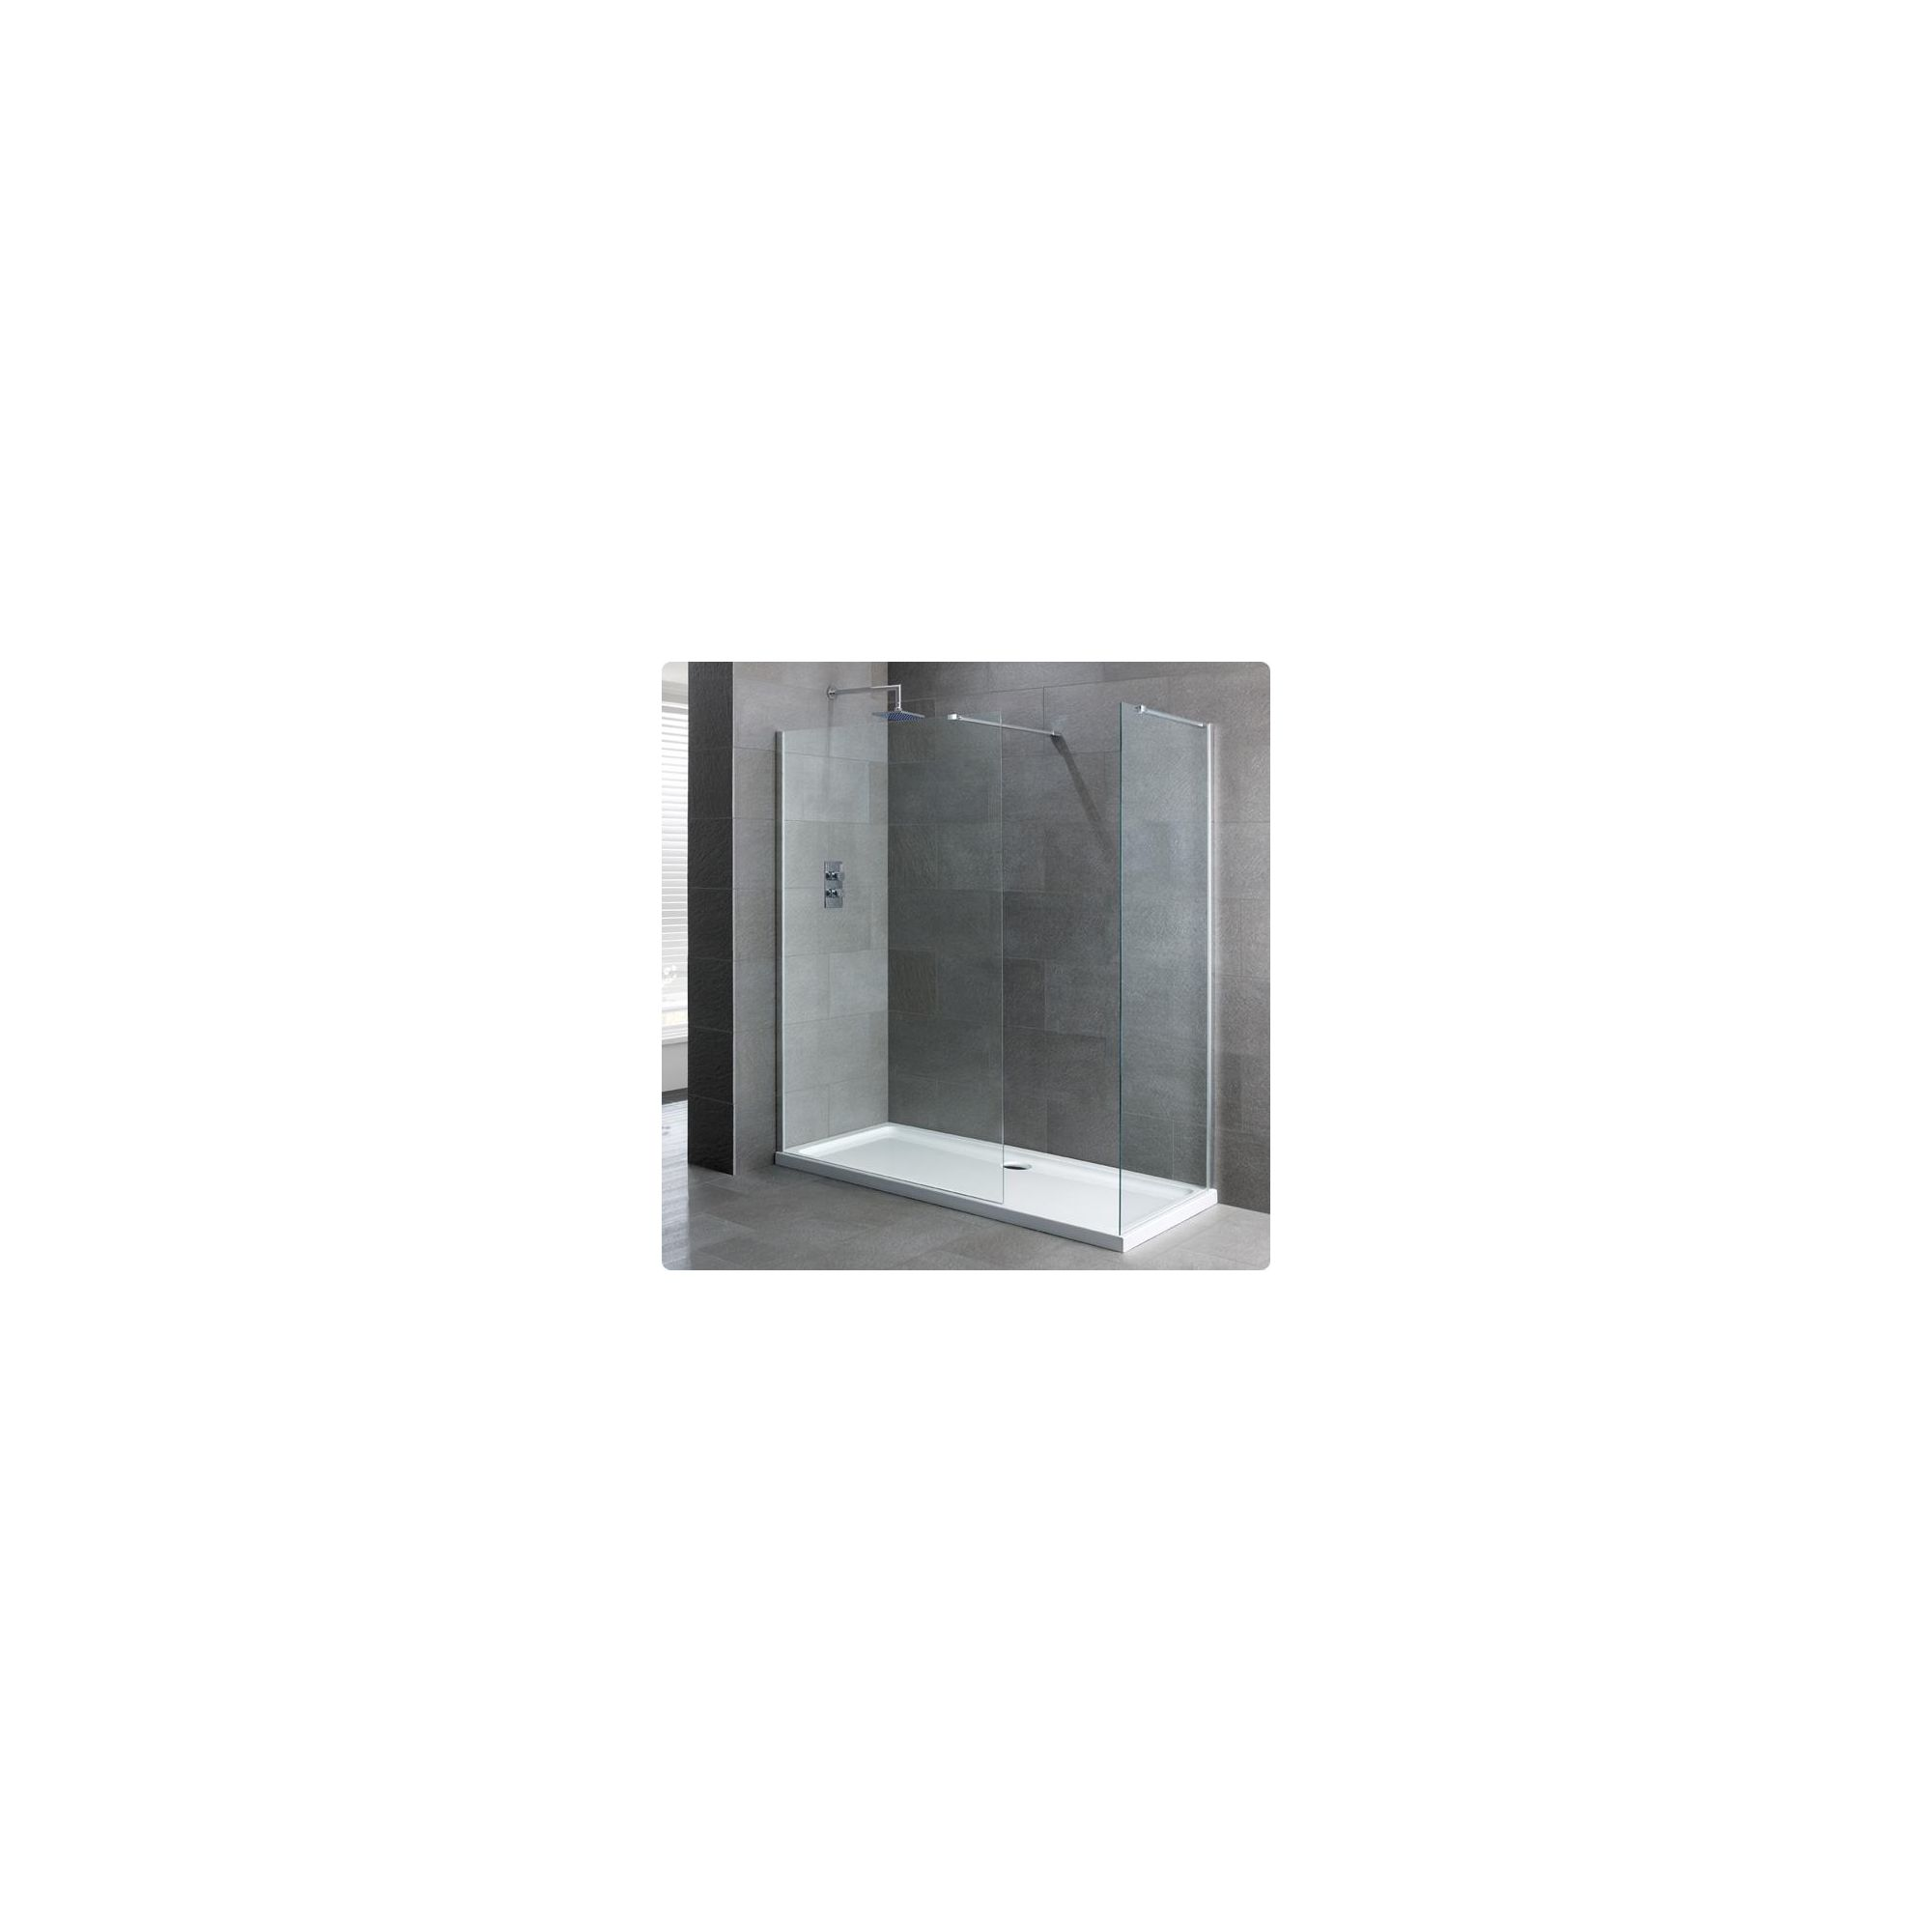 Duchy Select Silver Walk-In Shower Enclosure 1200mm x 900mm, Standard Tray, 6mm Glass at Tescos Direct